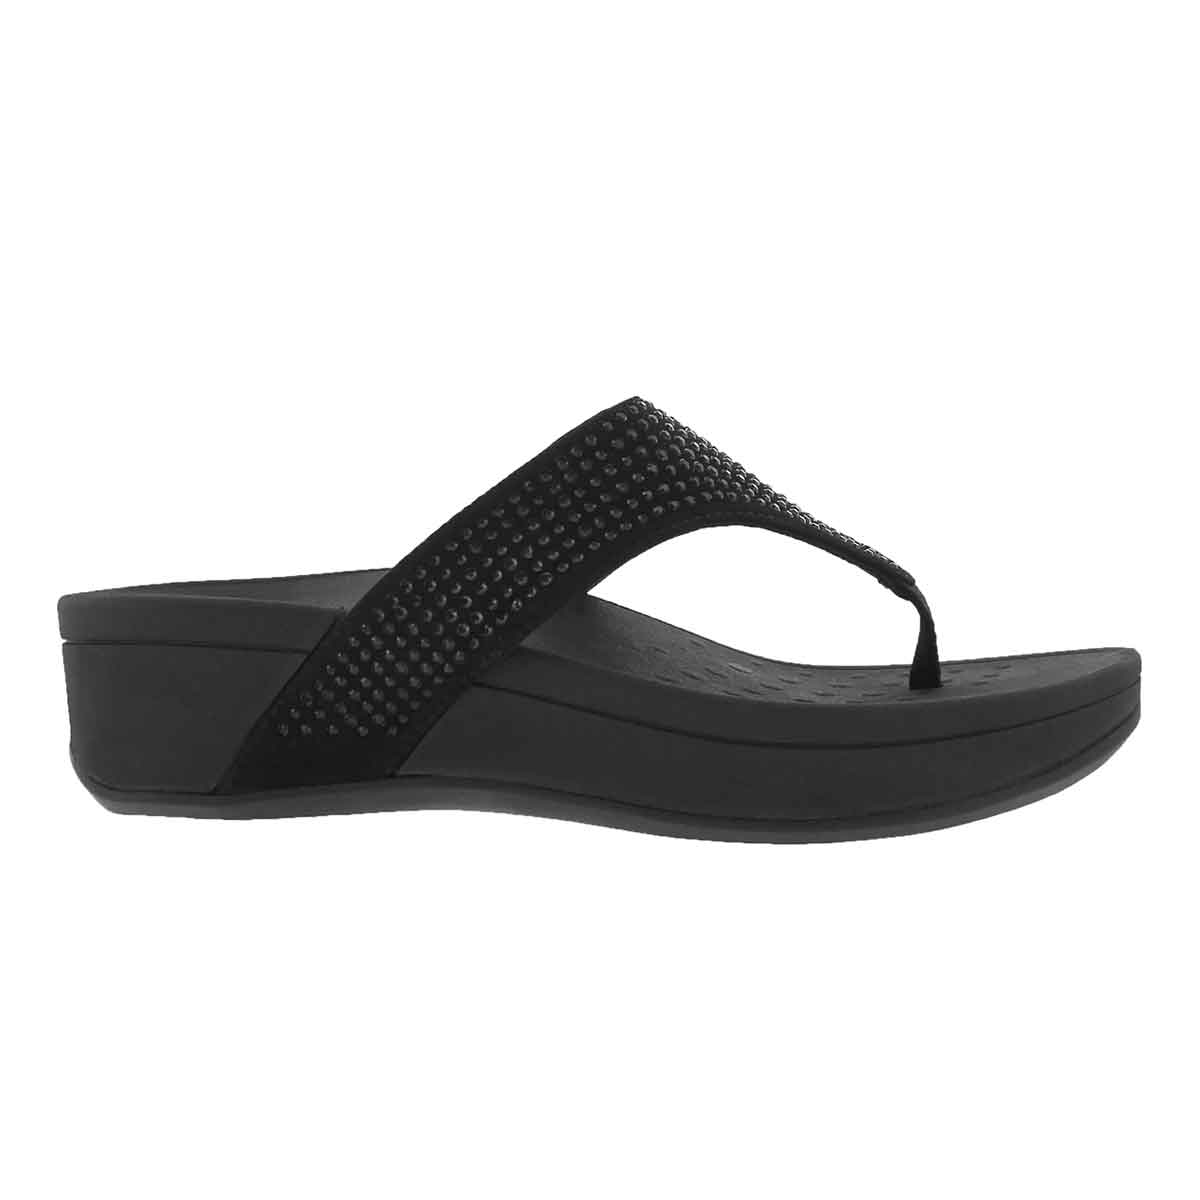 Lds Naples black arch support wdg sndl